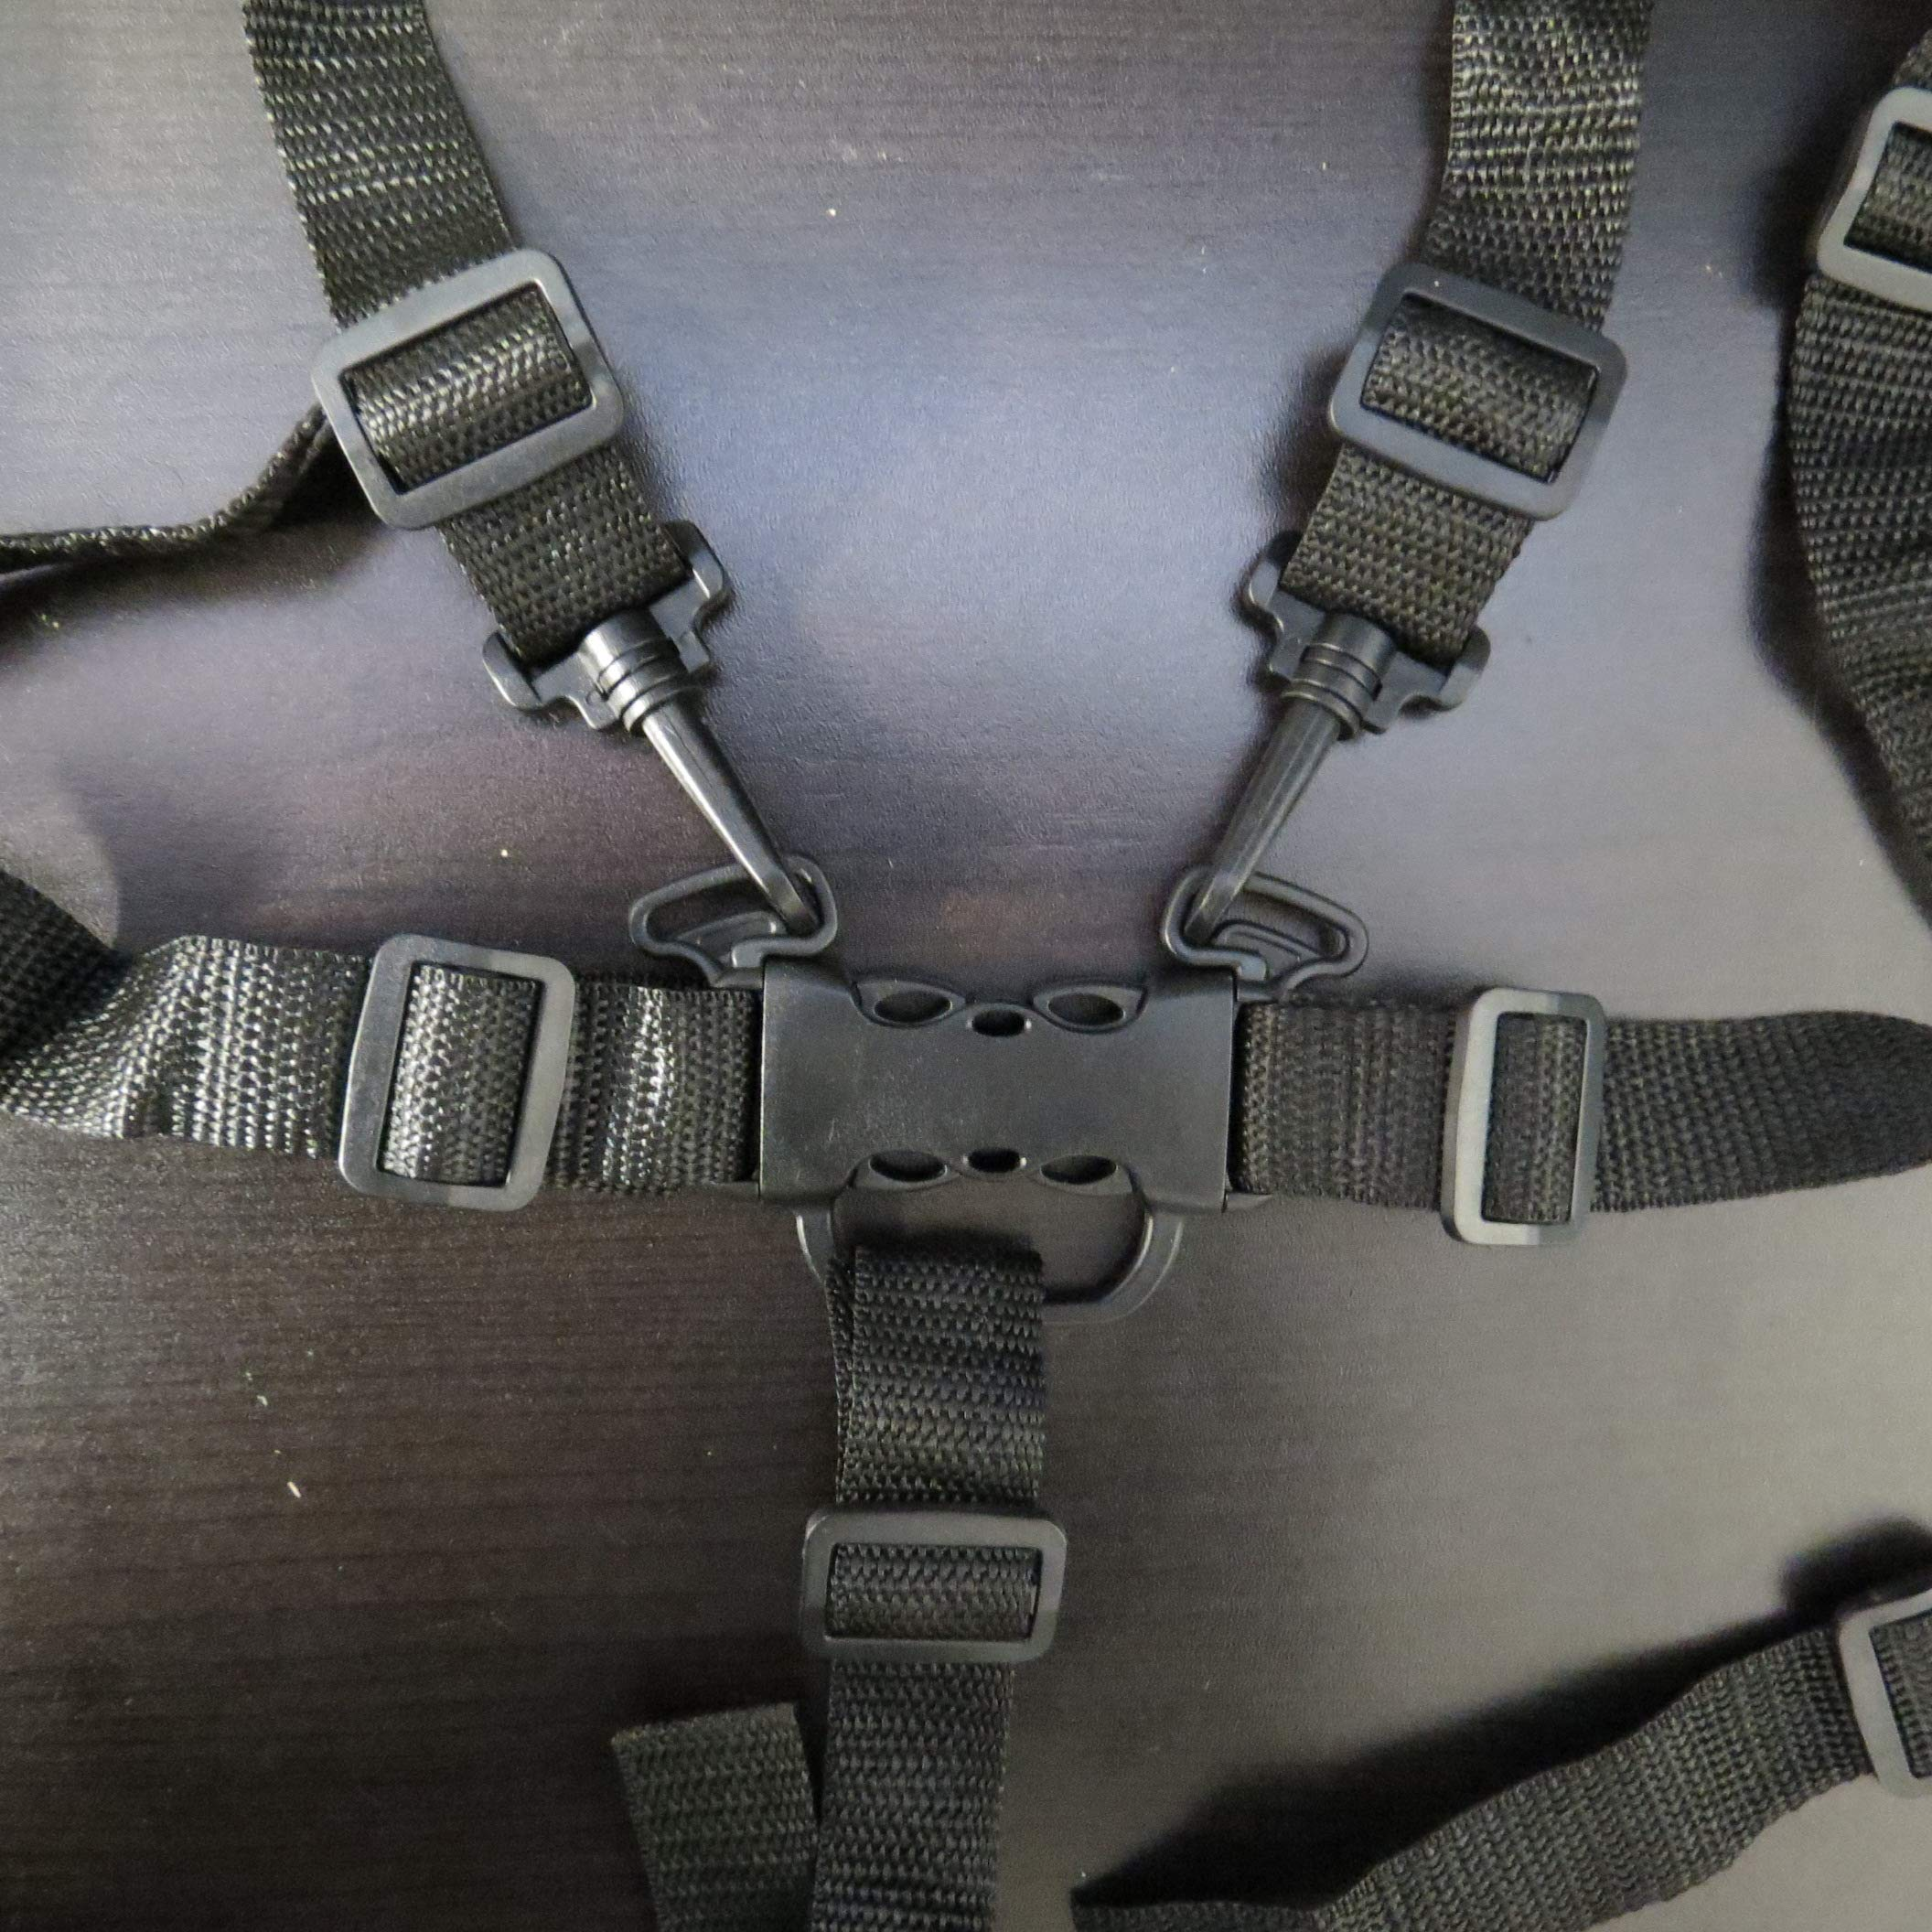 Replacement Parts/Accessories to fit J is for Jeep Stroller Products for Babies, Toddlers, and Children (5 Point Harness Buckle w/Clips+Straps)